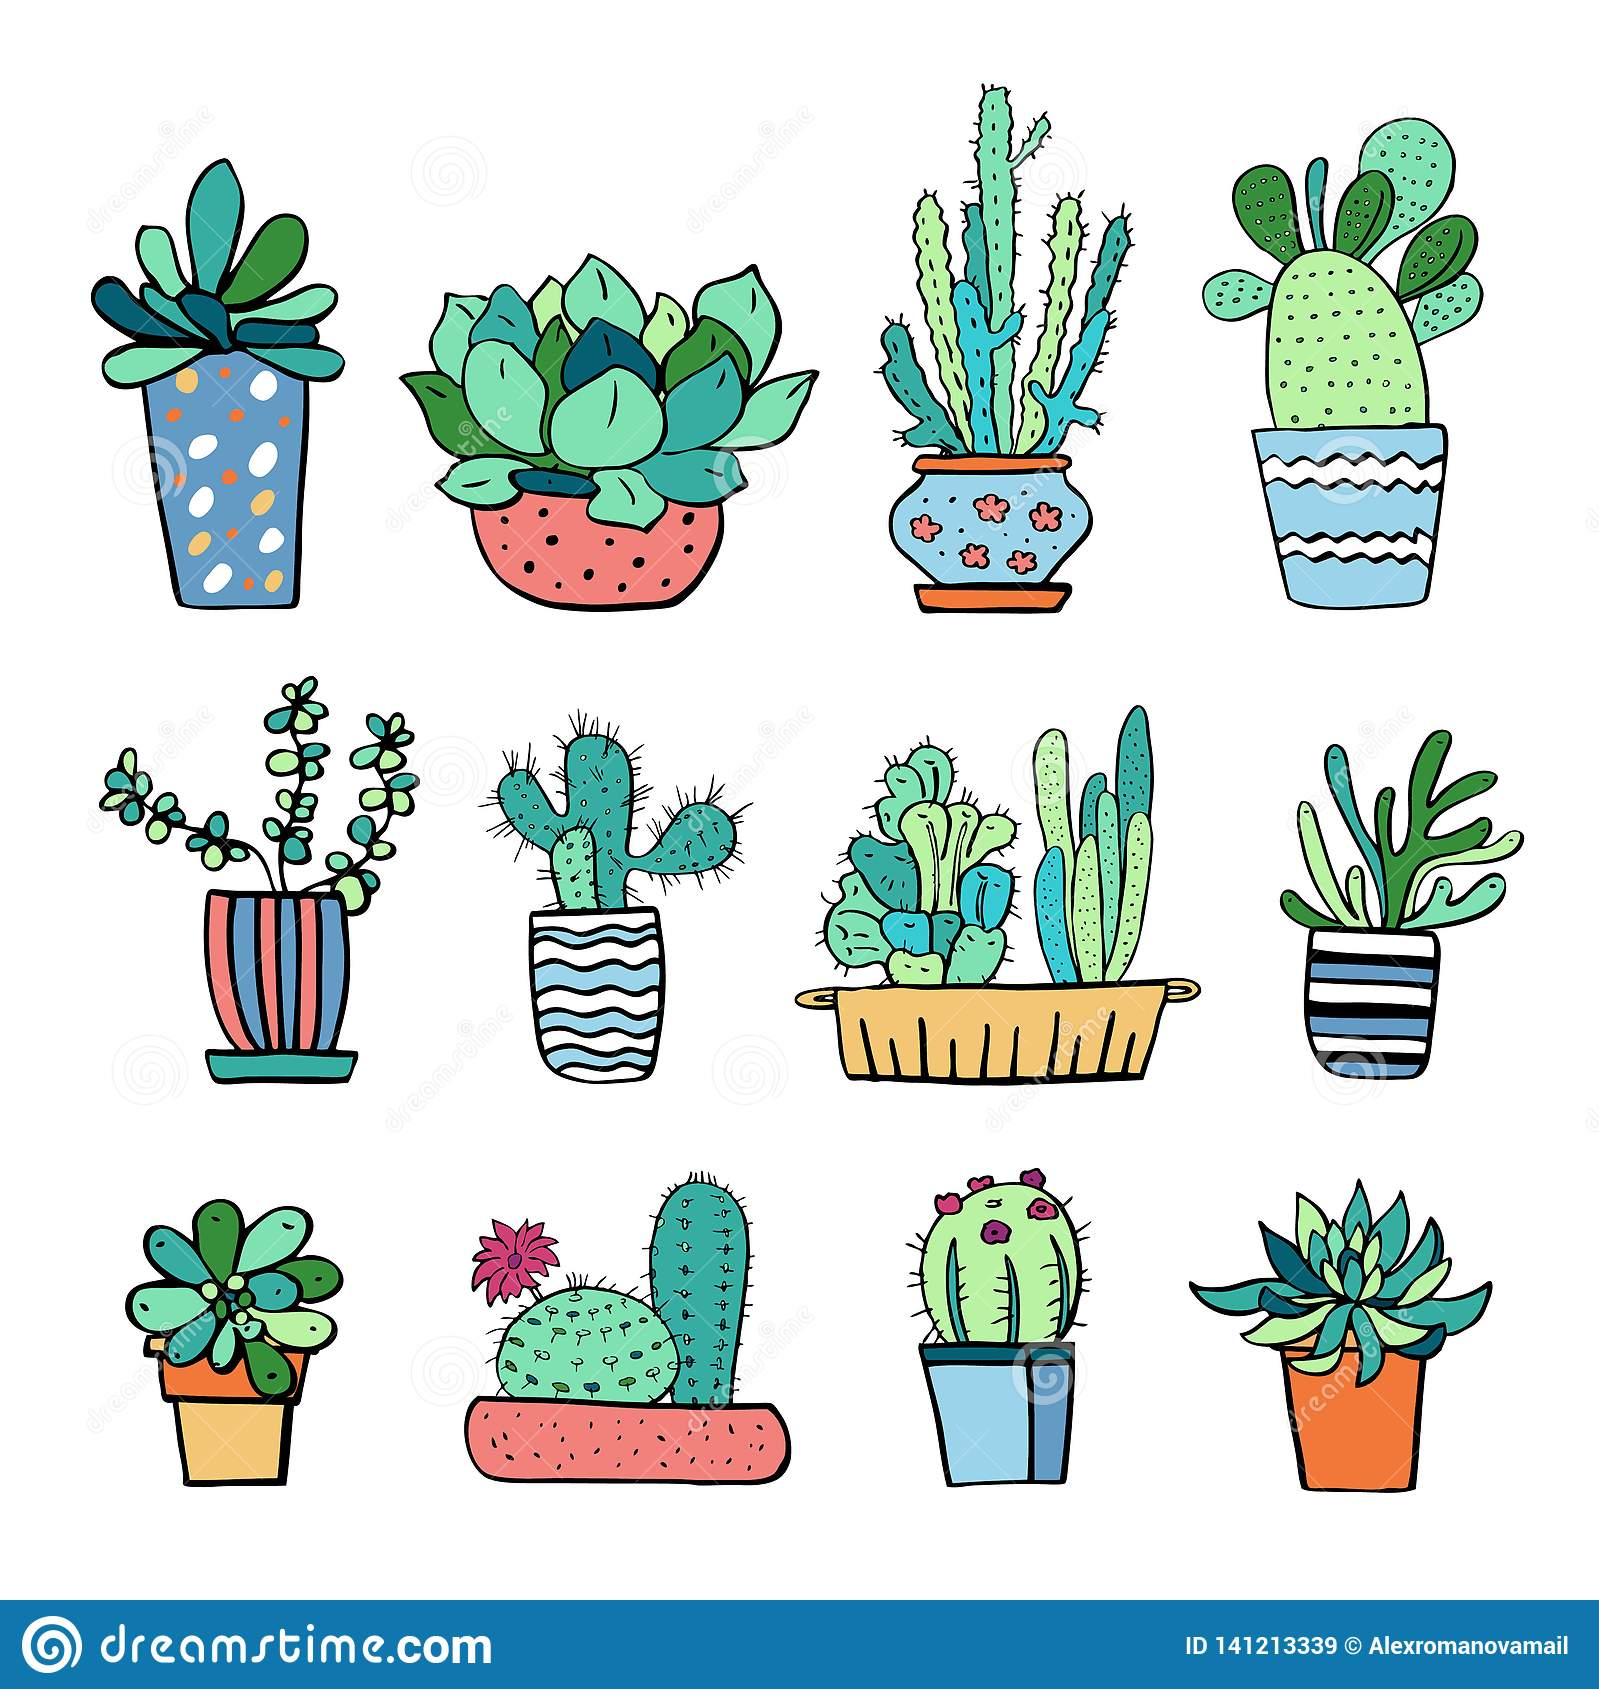 Cactus And Succulent Plants In Flowerpots Vector Hand Drawn Outline Color Sketch Illustration Stock Vector Illustration Of Cartoon Doodle 141213339